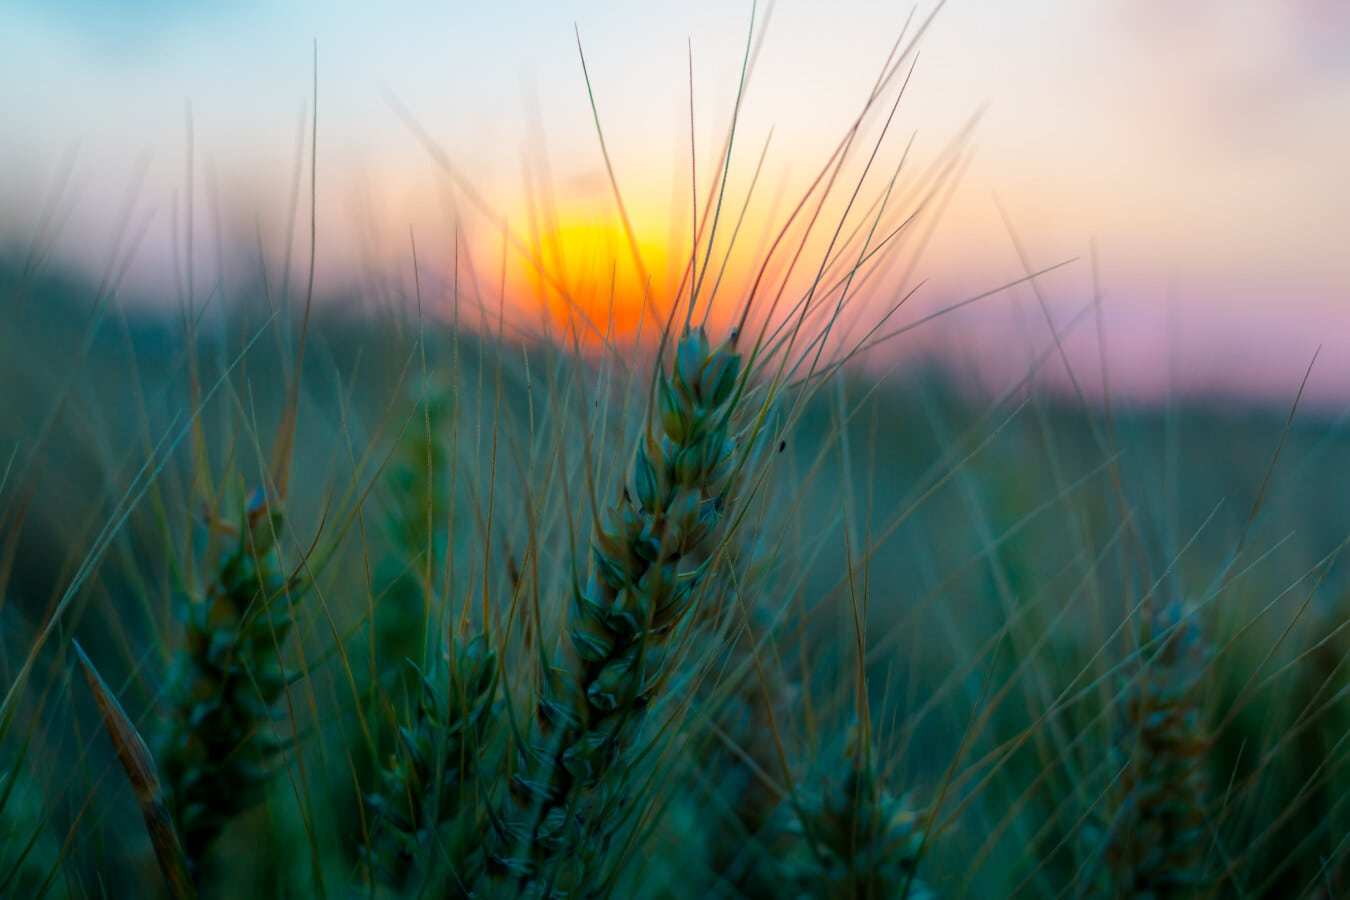 seed, close-up, barley, straw, agriculture, field, landscape, sunset, majestic, cereal